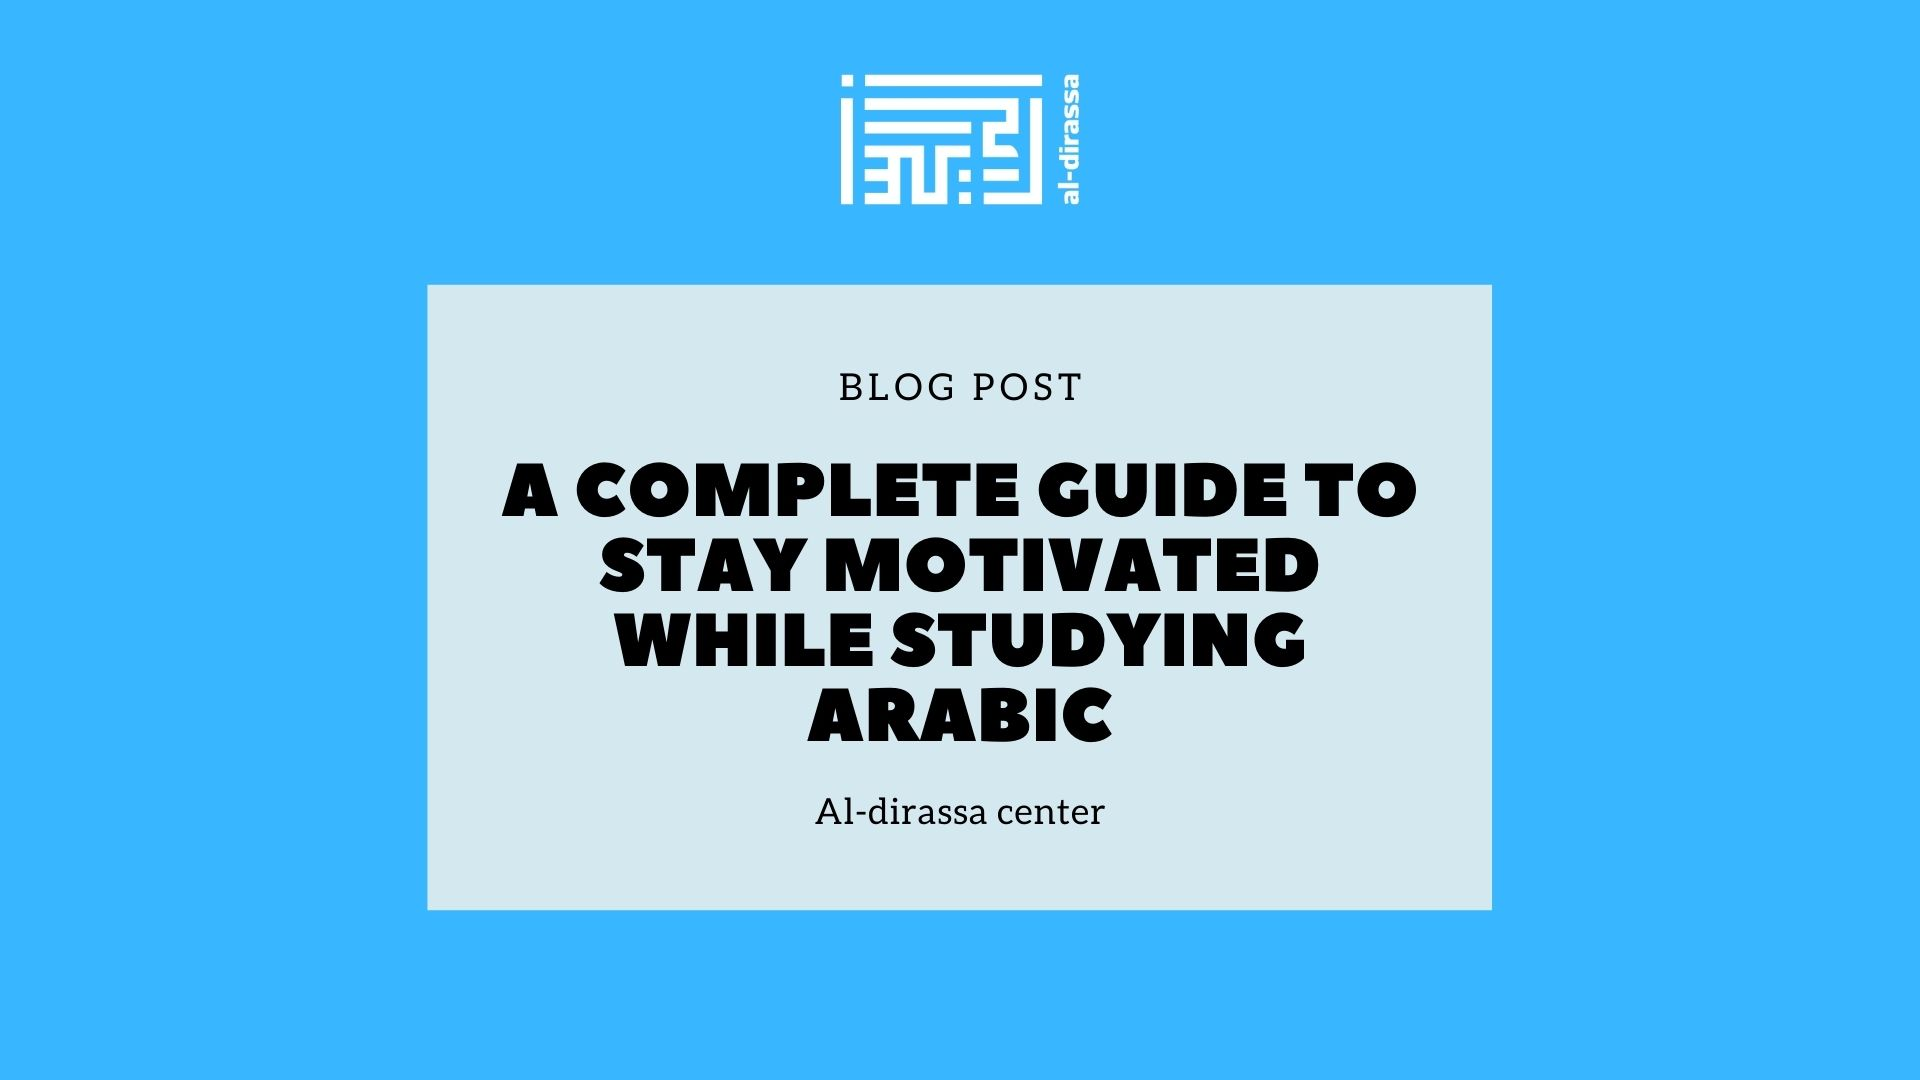 A complete guide to stay motivated while studying Arabic